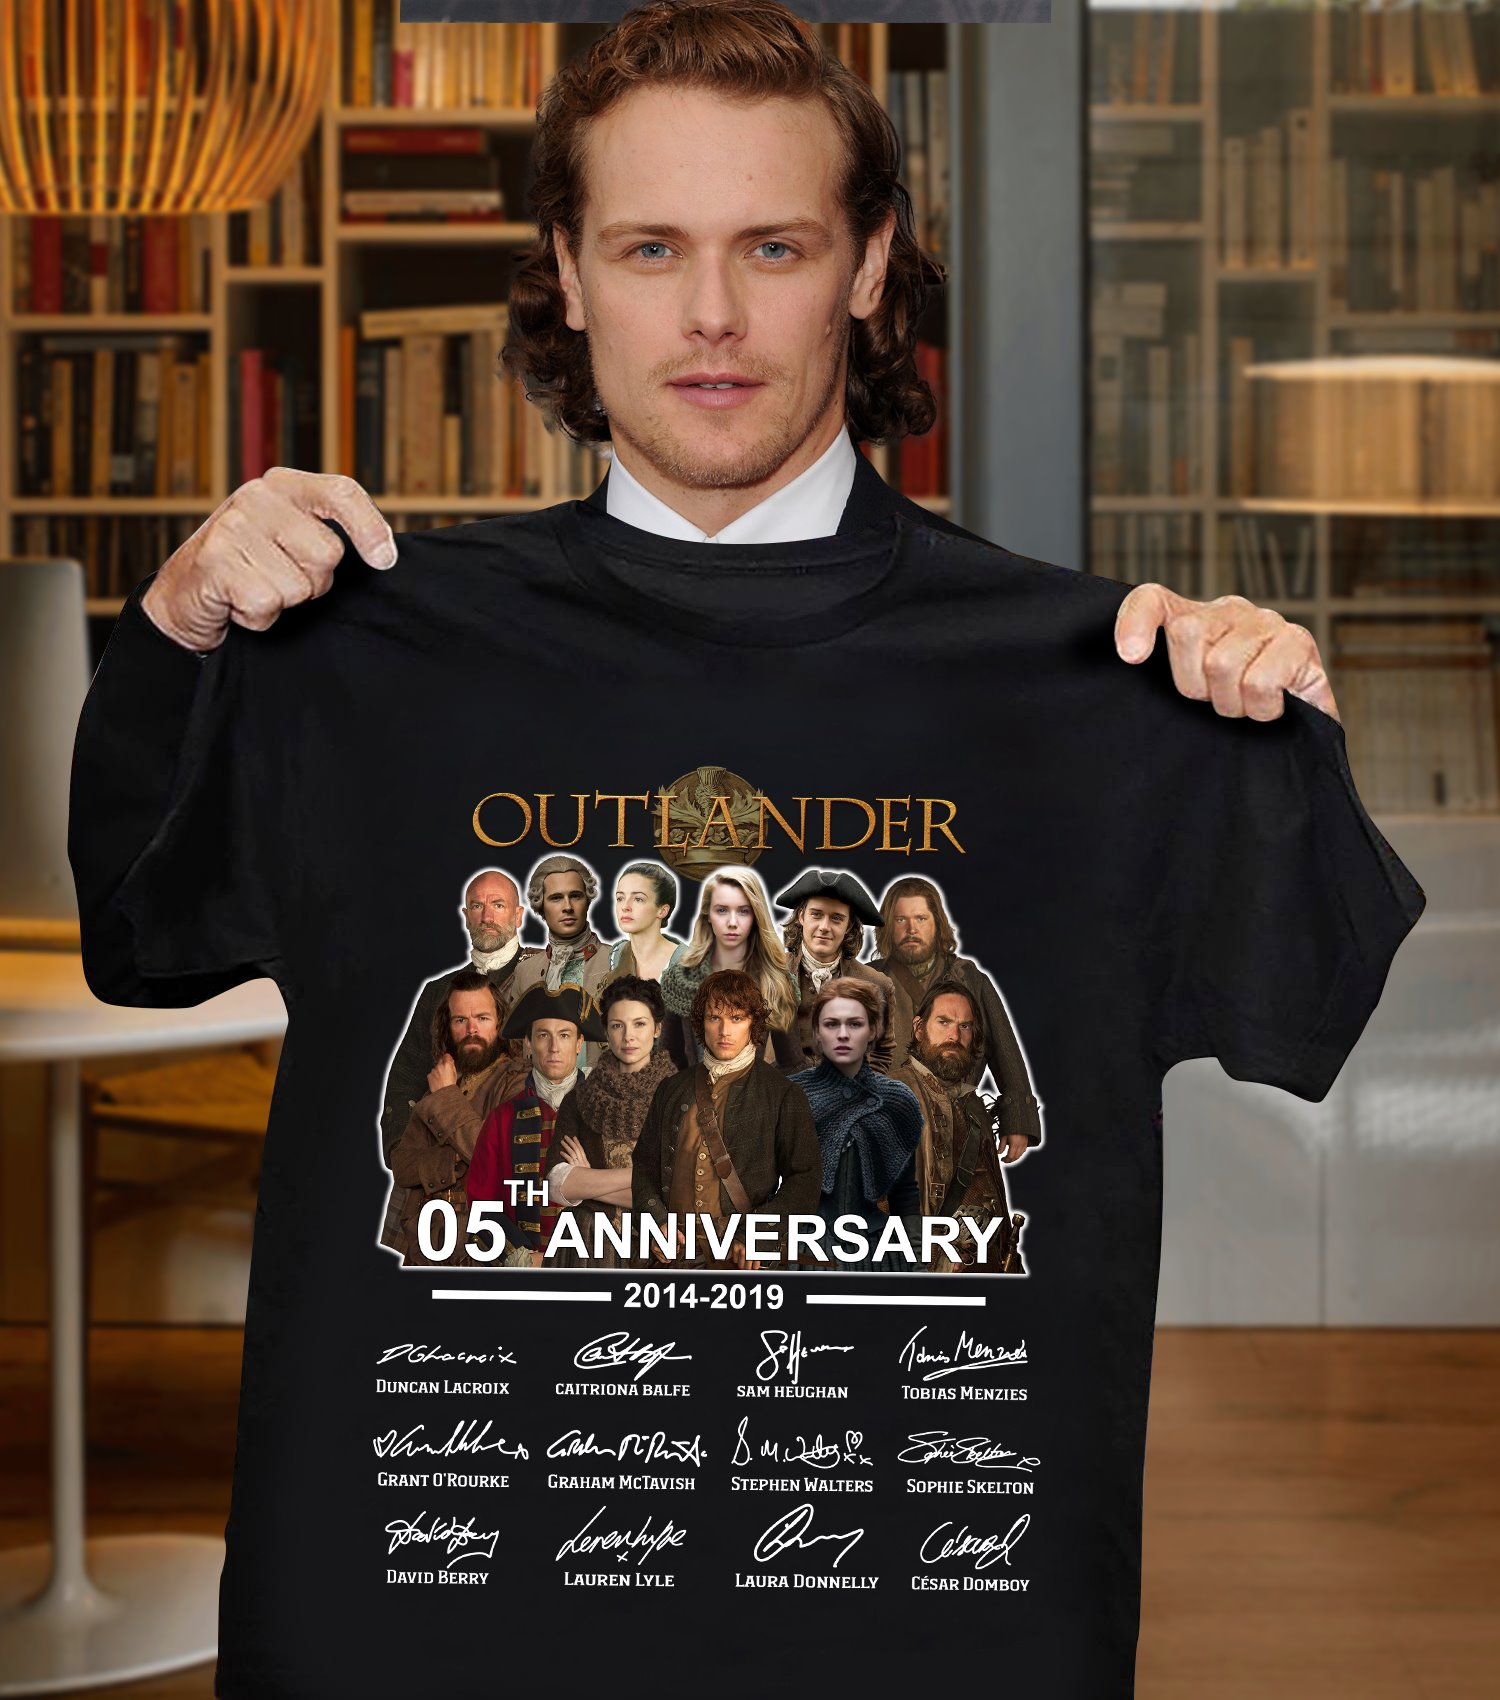 Outlander 05th Anniversary 2014 - 2019 And Members Signatures Long Sleeve T-Shirt